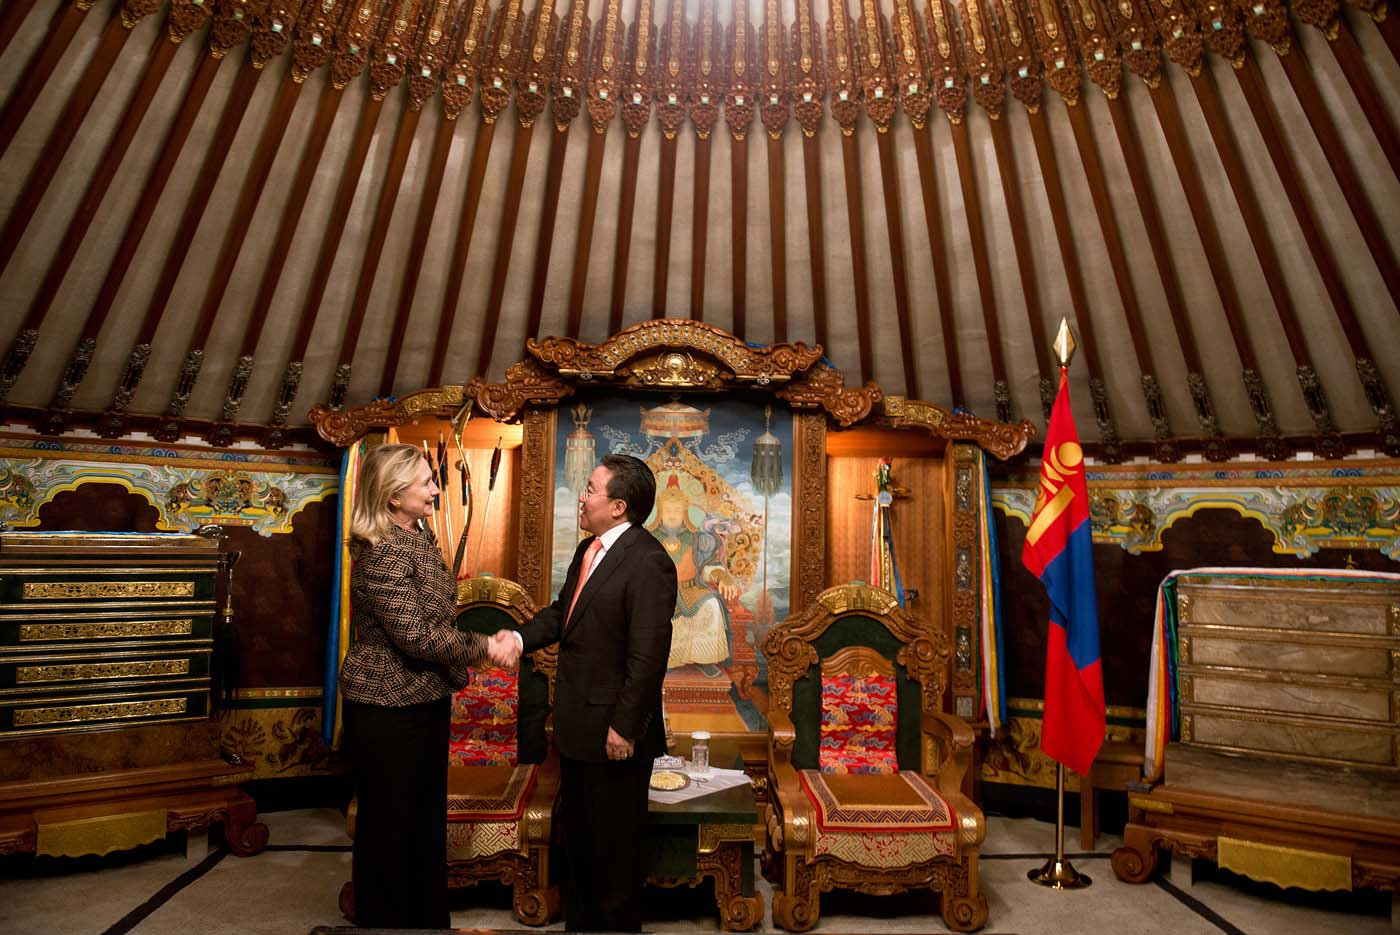 July 9 Photo Brief: Hillary Clinton visits Mongolia and a $19,994 microbubble underwater treadmill for pets